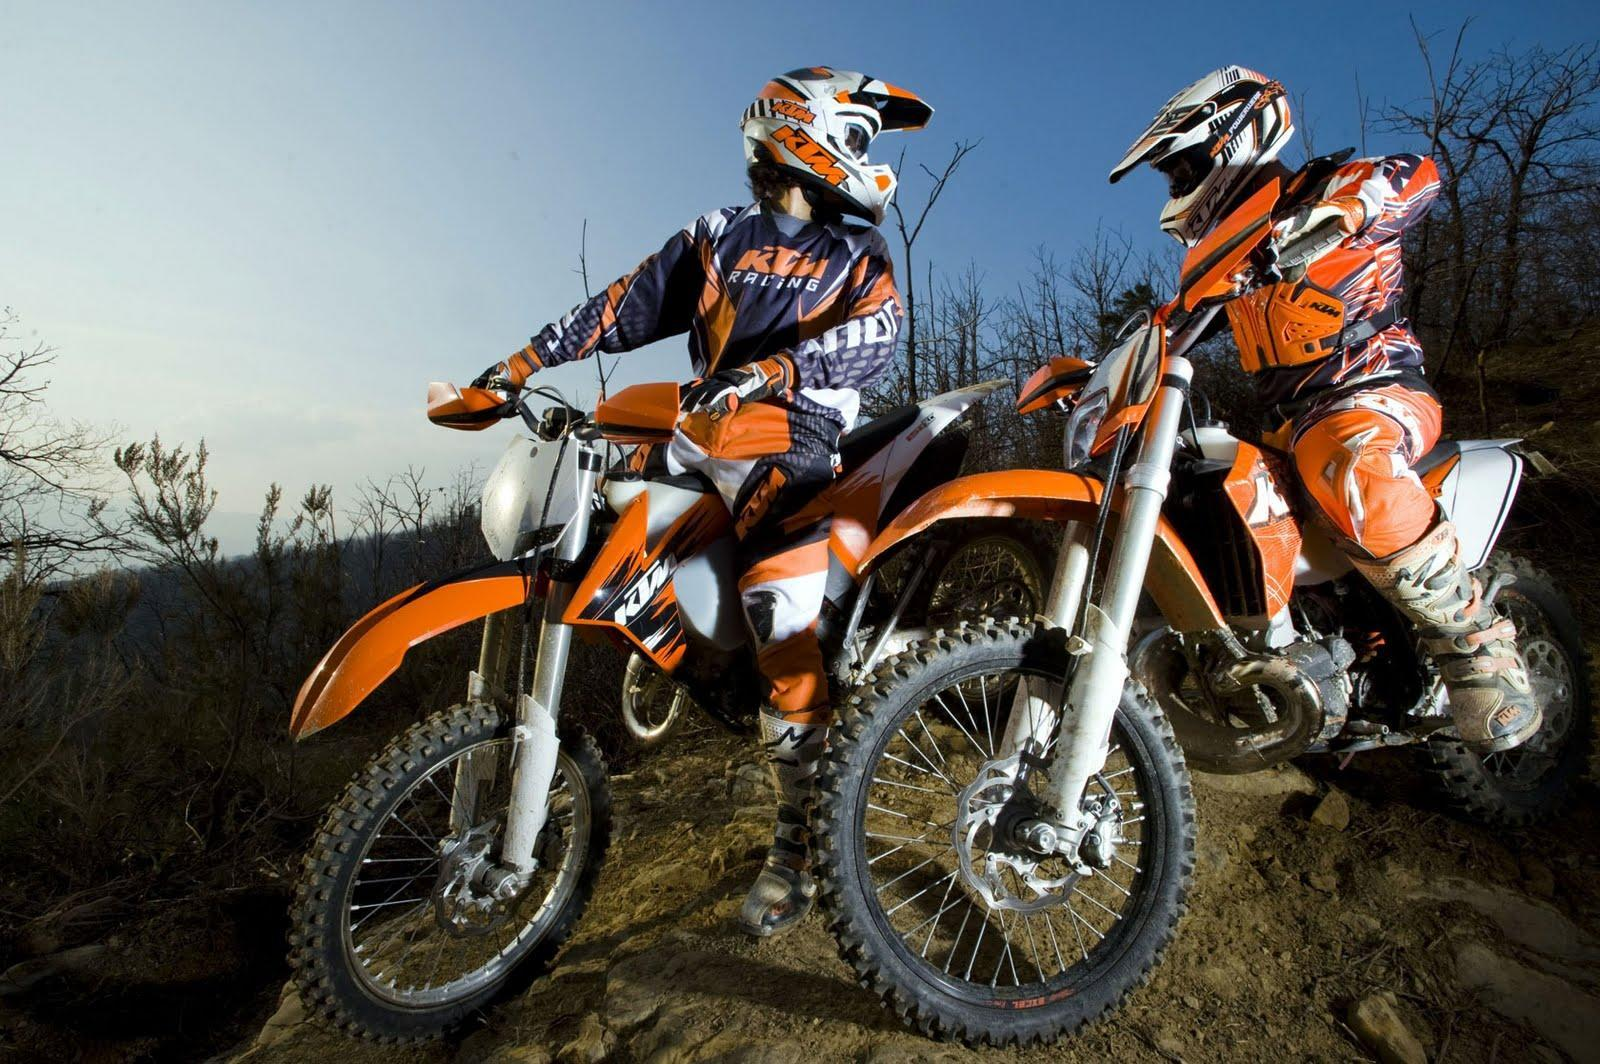 two ktm 450 motocross wallpaper for android 7974 wallpaper high